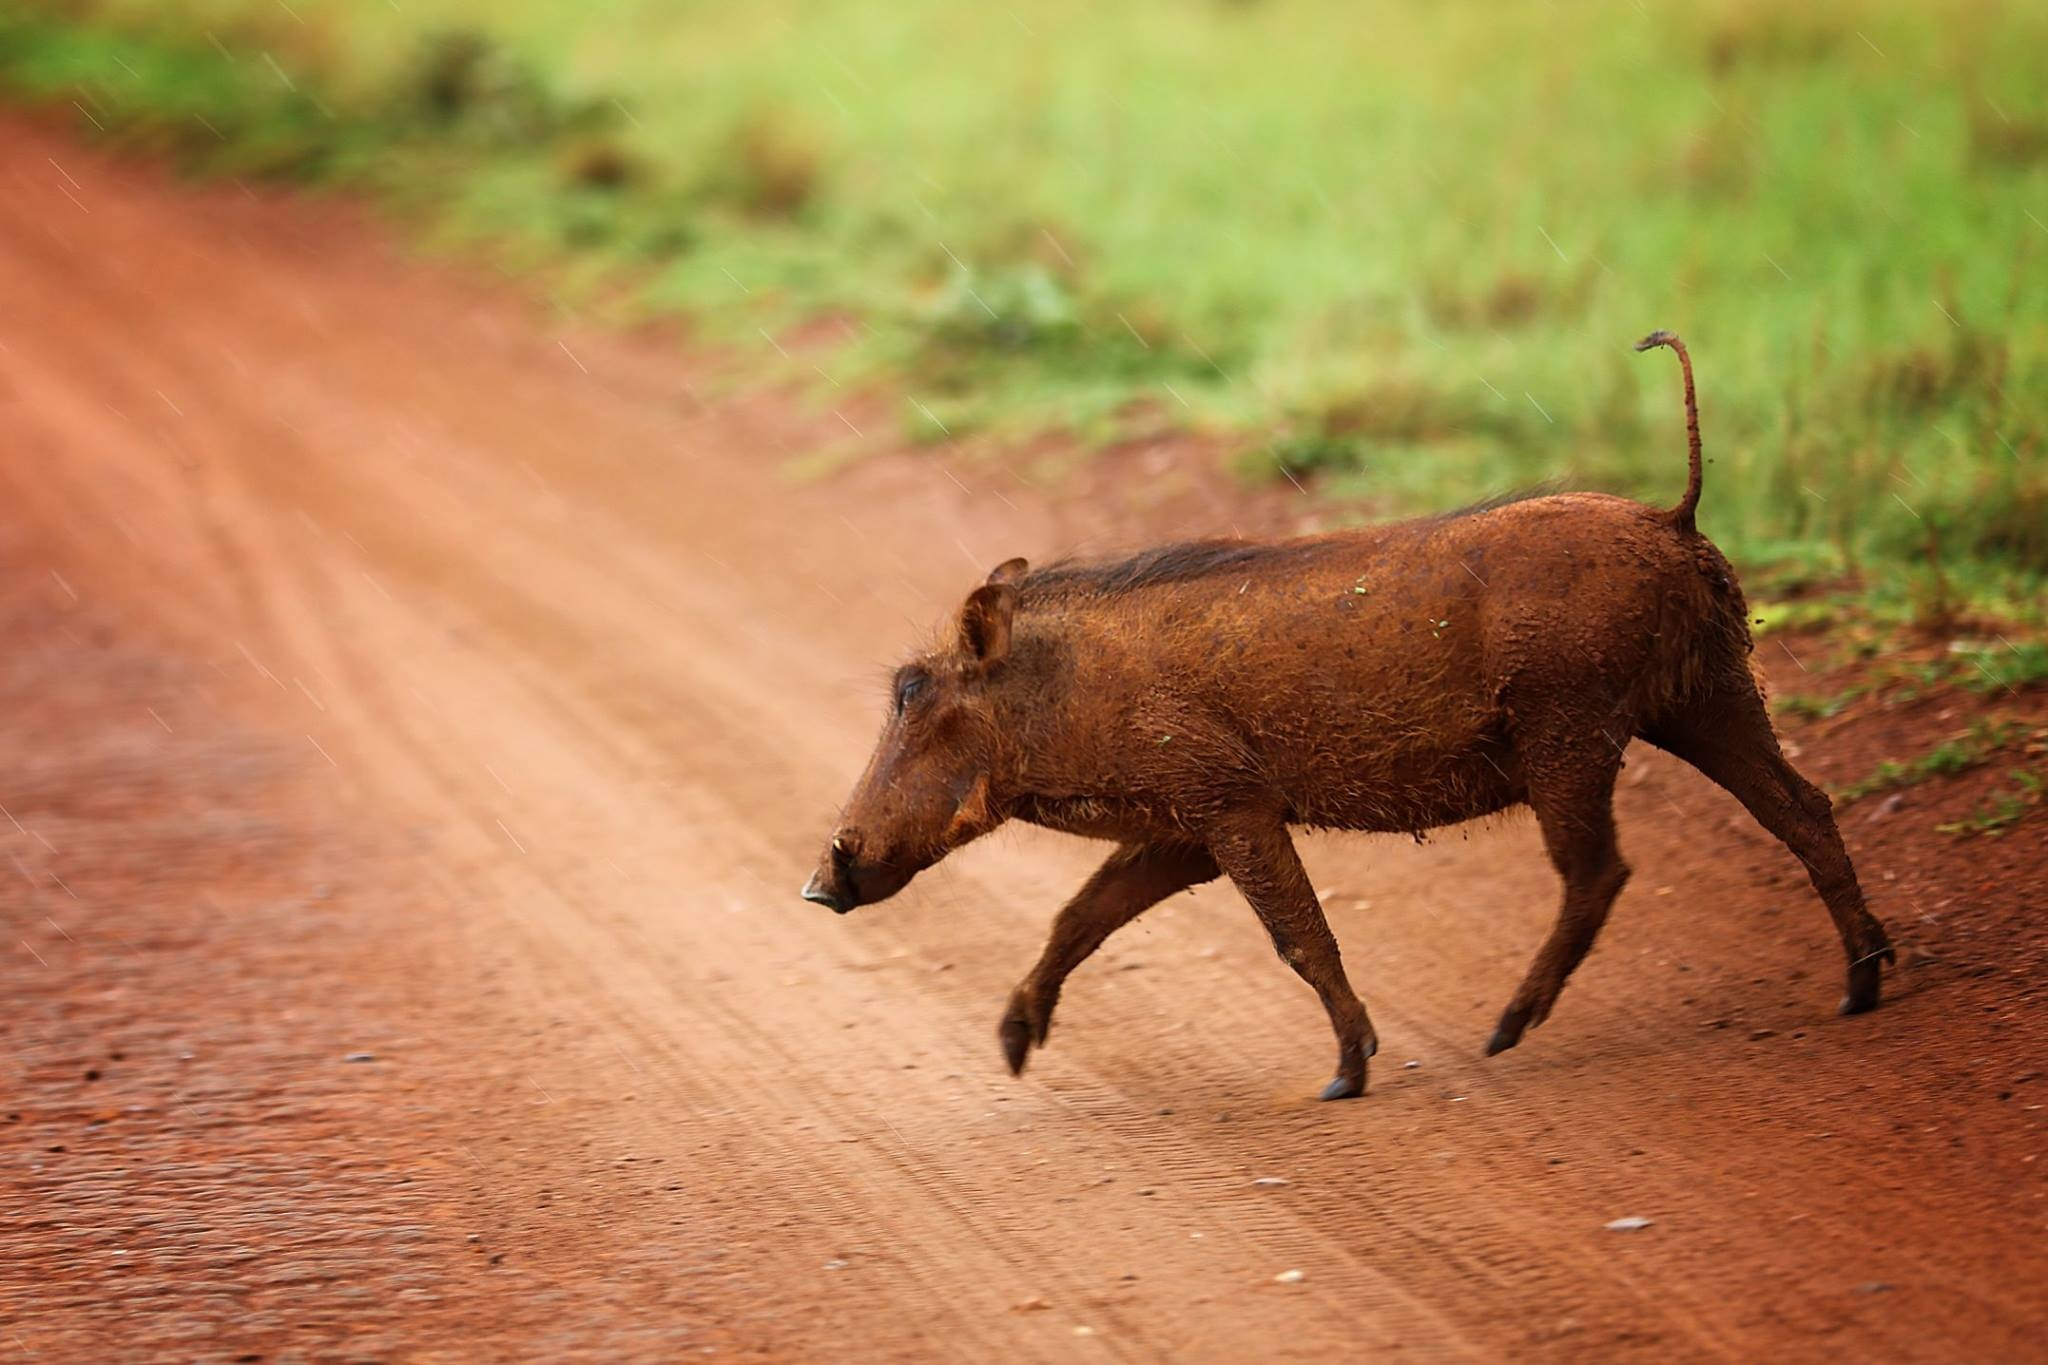 Why did Pumba cross the road? by Jennie